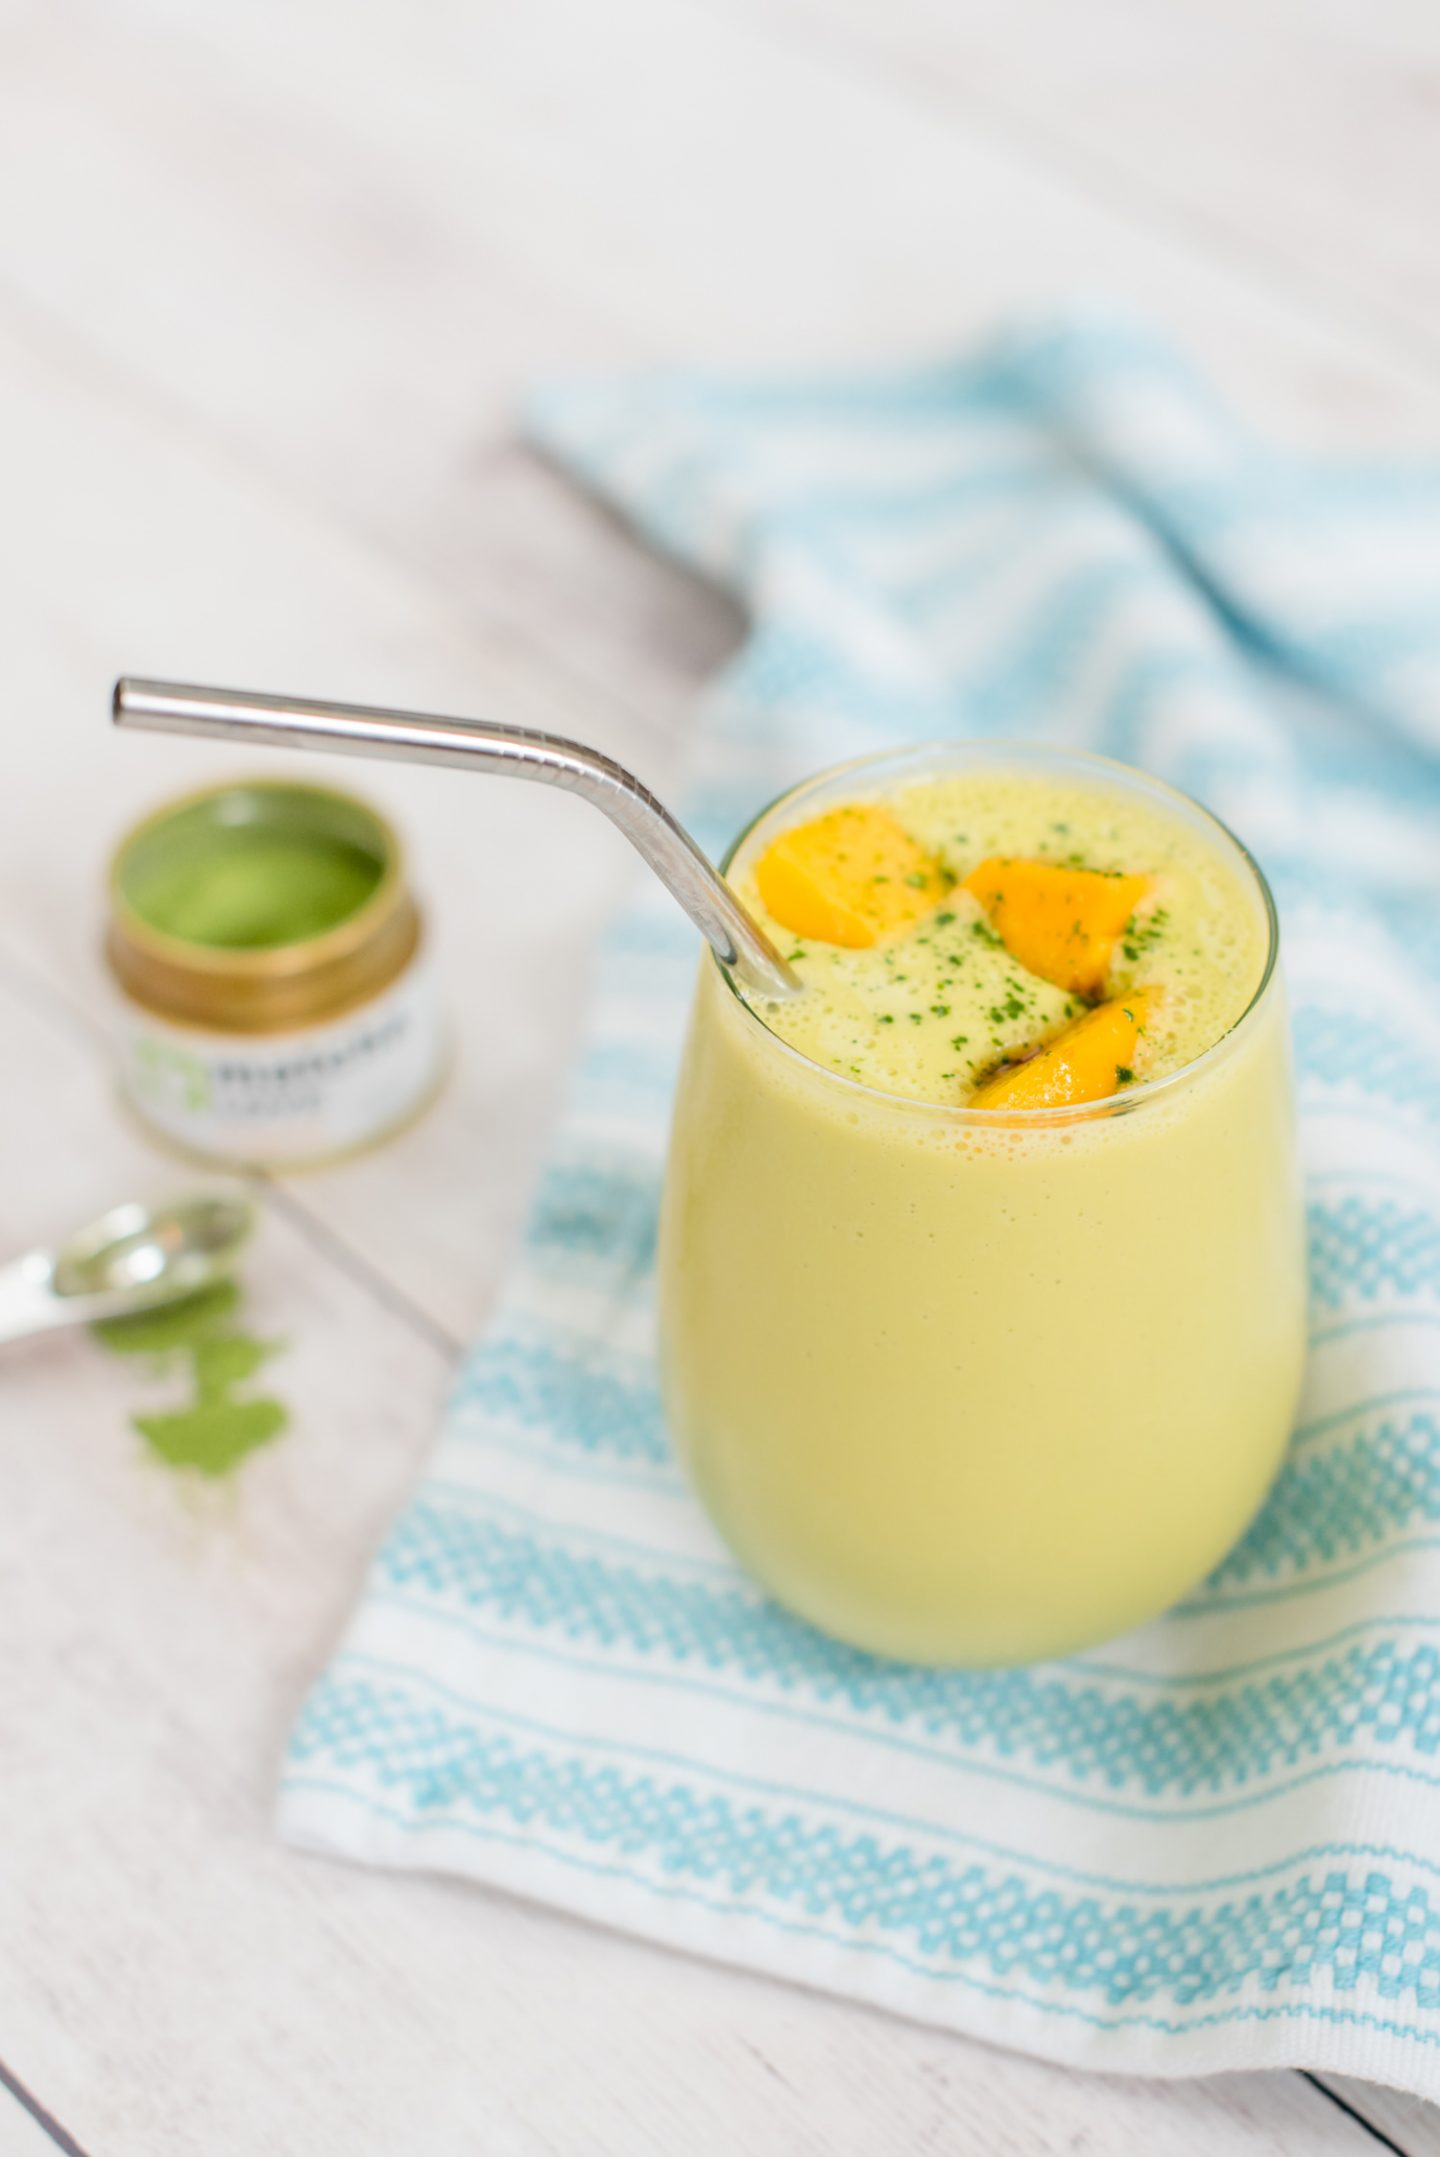 Mango-Peach & Matcha Smoothie Recipe // Miss Molly Moon | A Refreshing Mango-Peach & Matcha Smoothie Recipe featured by top Atlanta foodie blogger, Miss Molly Moon